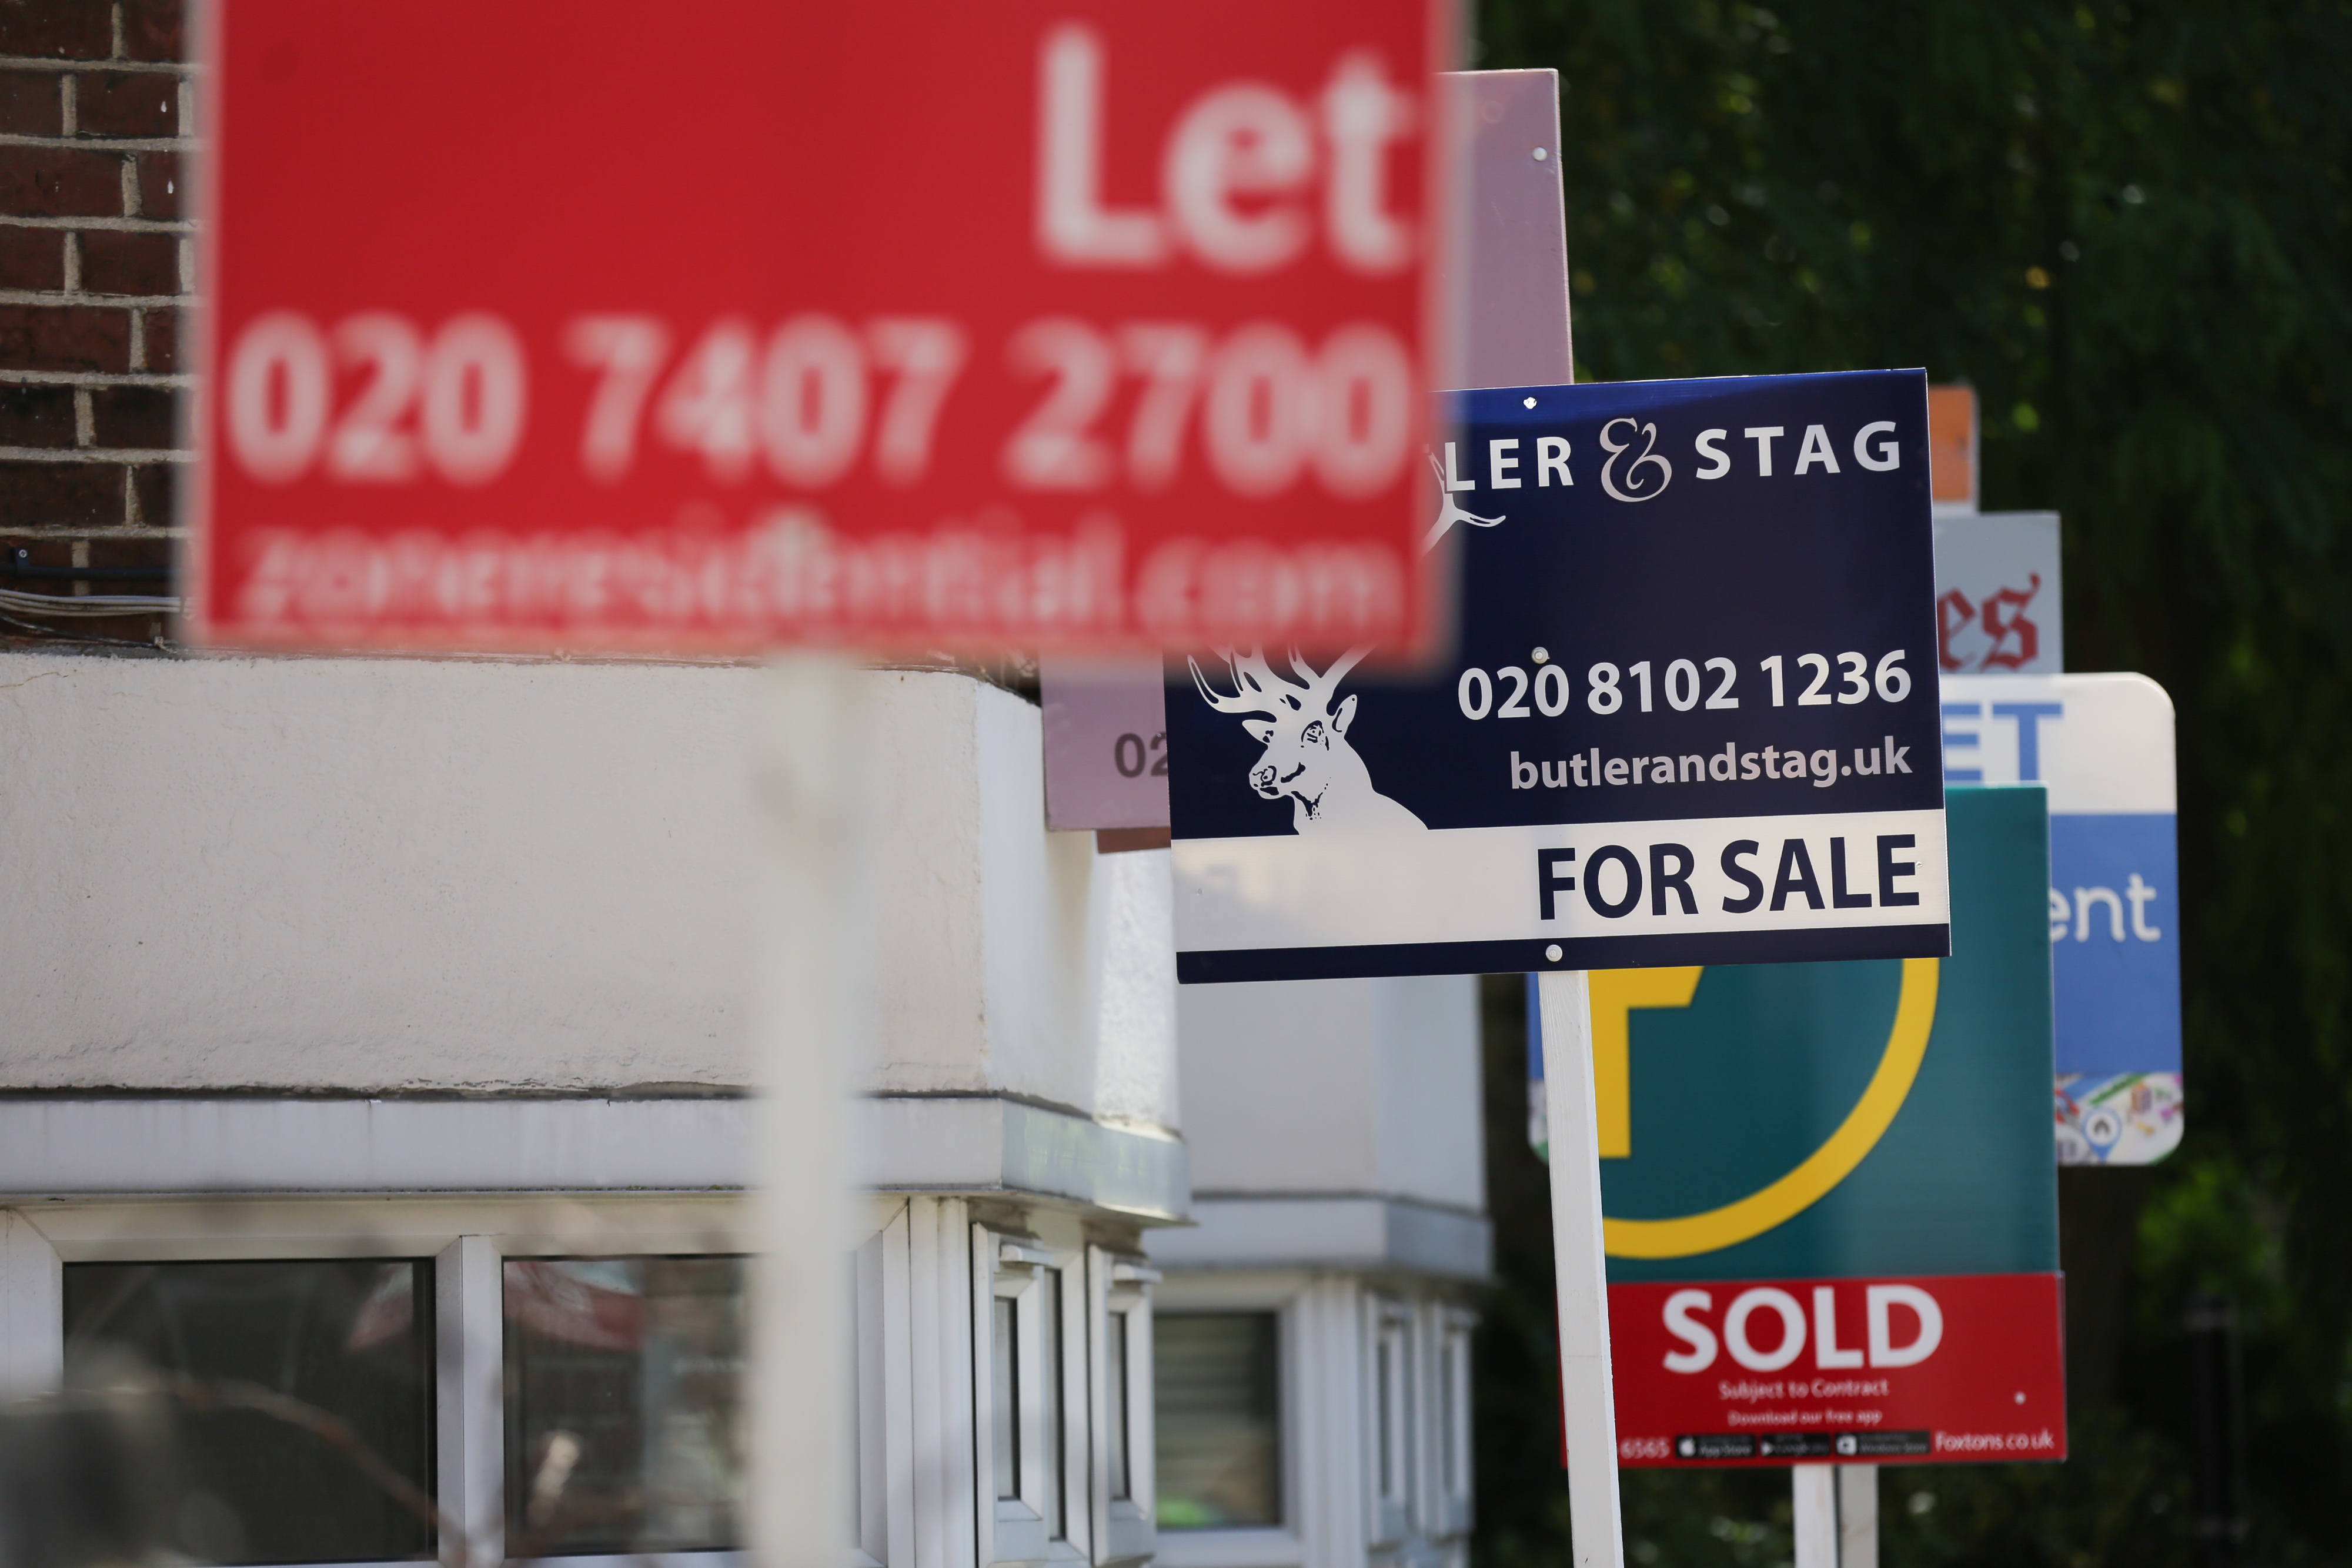 Estate agents placards are seen in front of houses in London on August 17, 2016  From computers and cars to carpets and food, Britain's decision to leave the EU is beginning to hit consumers in the pocket, having already spread uncertainty through the property market. There are fears over the UK housing market, but deflation is more of a concern than price rises in this key sector. Figures released Monday showed that residential rents for new lets in London had fallen for the first time in six years. In addition, homeowners have seen the value of their property rise on average by just 2.1 percent in the year up tol August, a slowdown from the breakneck growth of recent years, according to property website Rightmove.  / AFP PHOTO / Daniel LEAL-OLIVAS        (Photo credit should read DANIEL LEAL-OLIVAS/AFP via Getty Images)